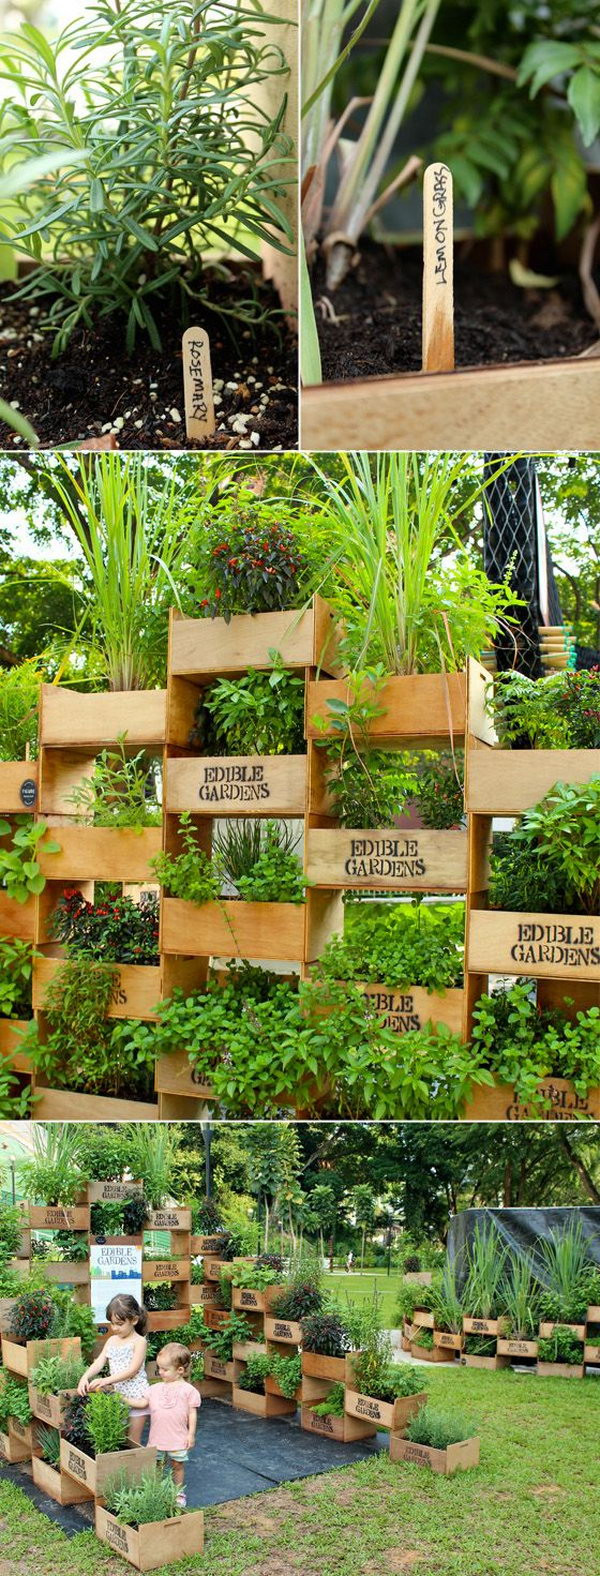 Best ideas about Diy Vertical Garden Wall . Save or Pin 20 Cool Vertical Gardening Ideas Hative Now.